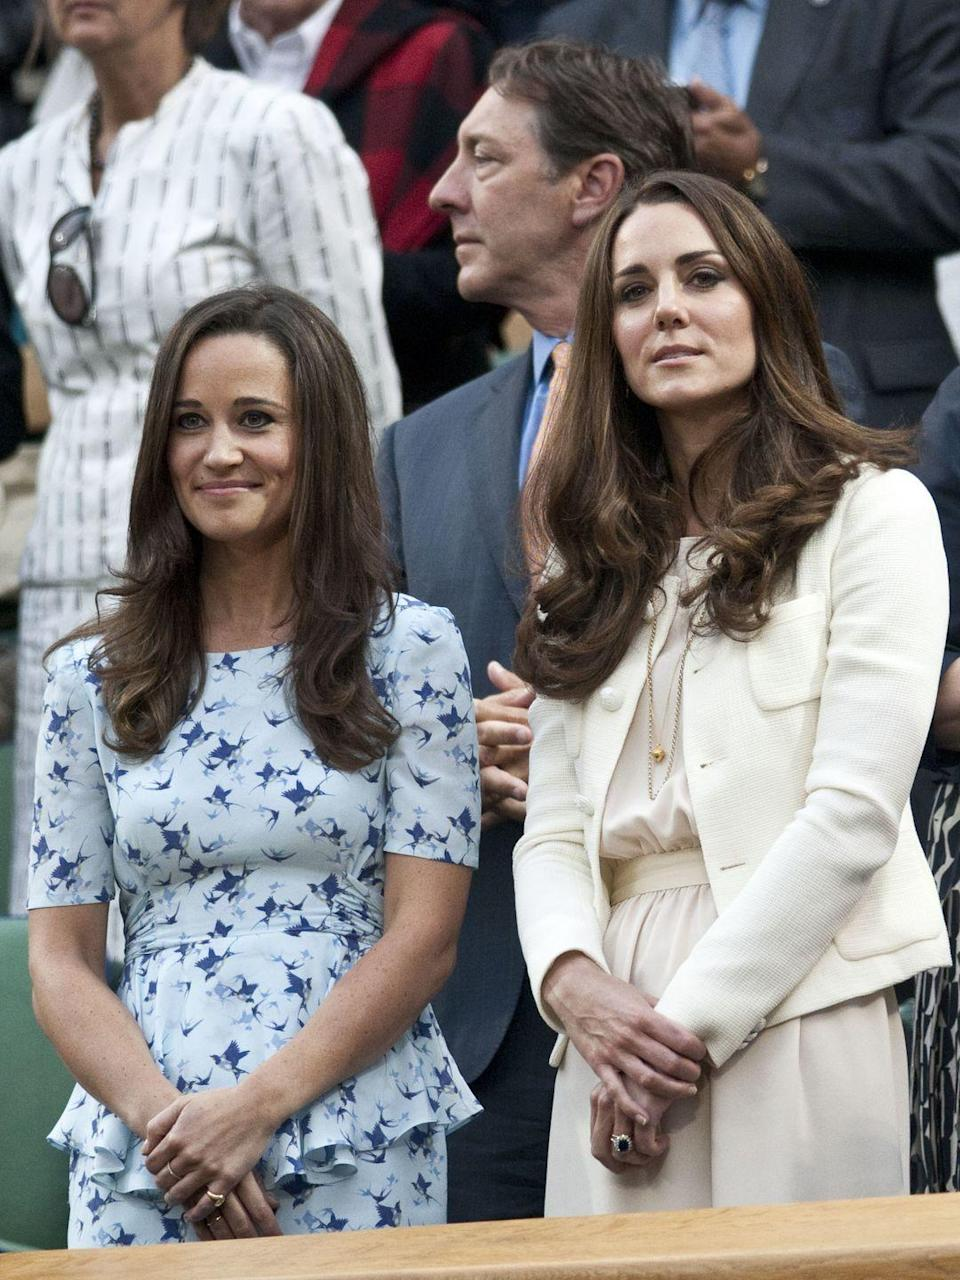 <p>Pippa Middleton was thrown into the spotlight after serving as her sister's maid of honor in the 2011 royal wedding. Although the Middleton sisters have always closely resembled one another, Pippa has picked up on some royal styling cues from her big sis in recent years. </p>